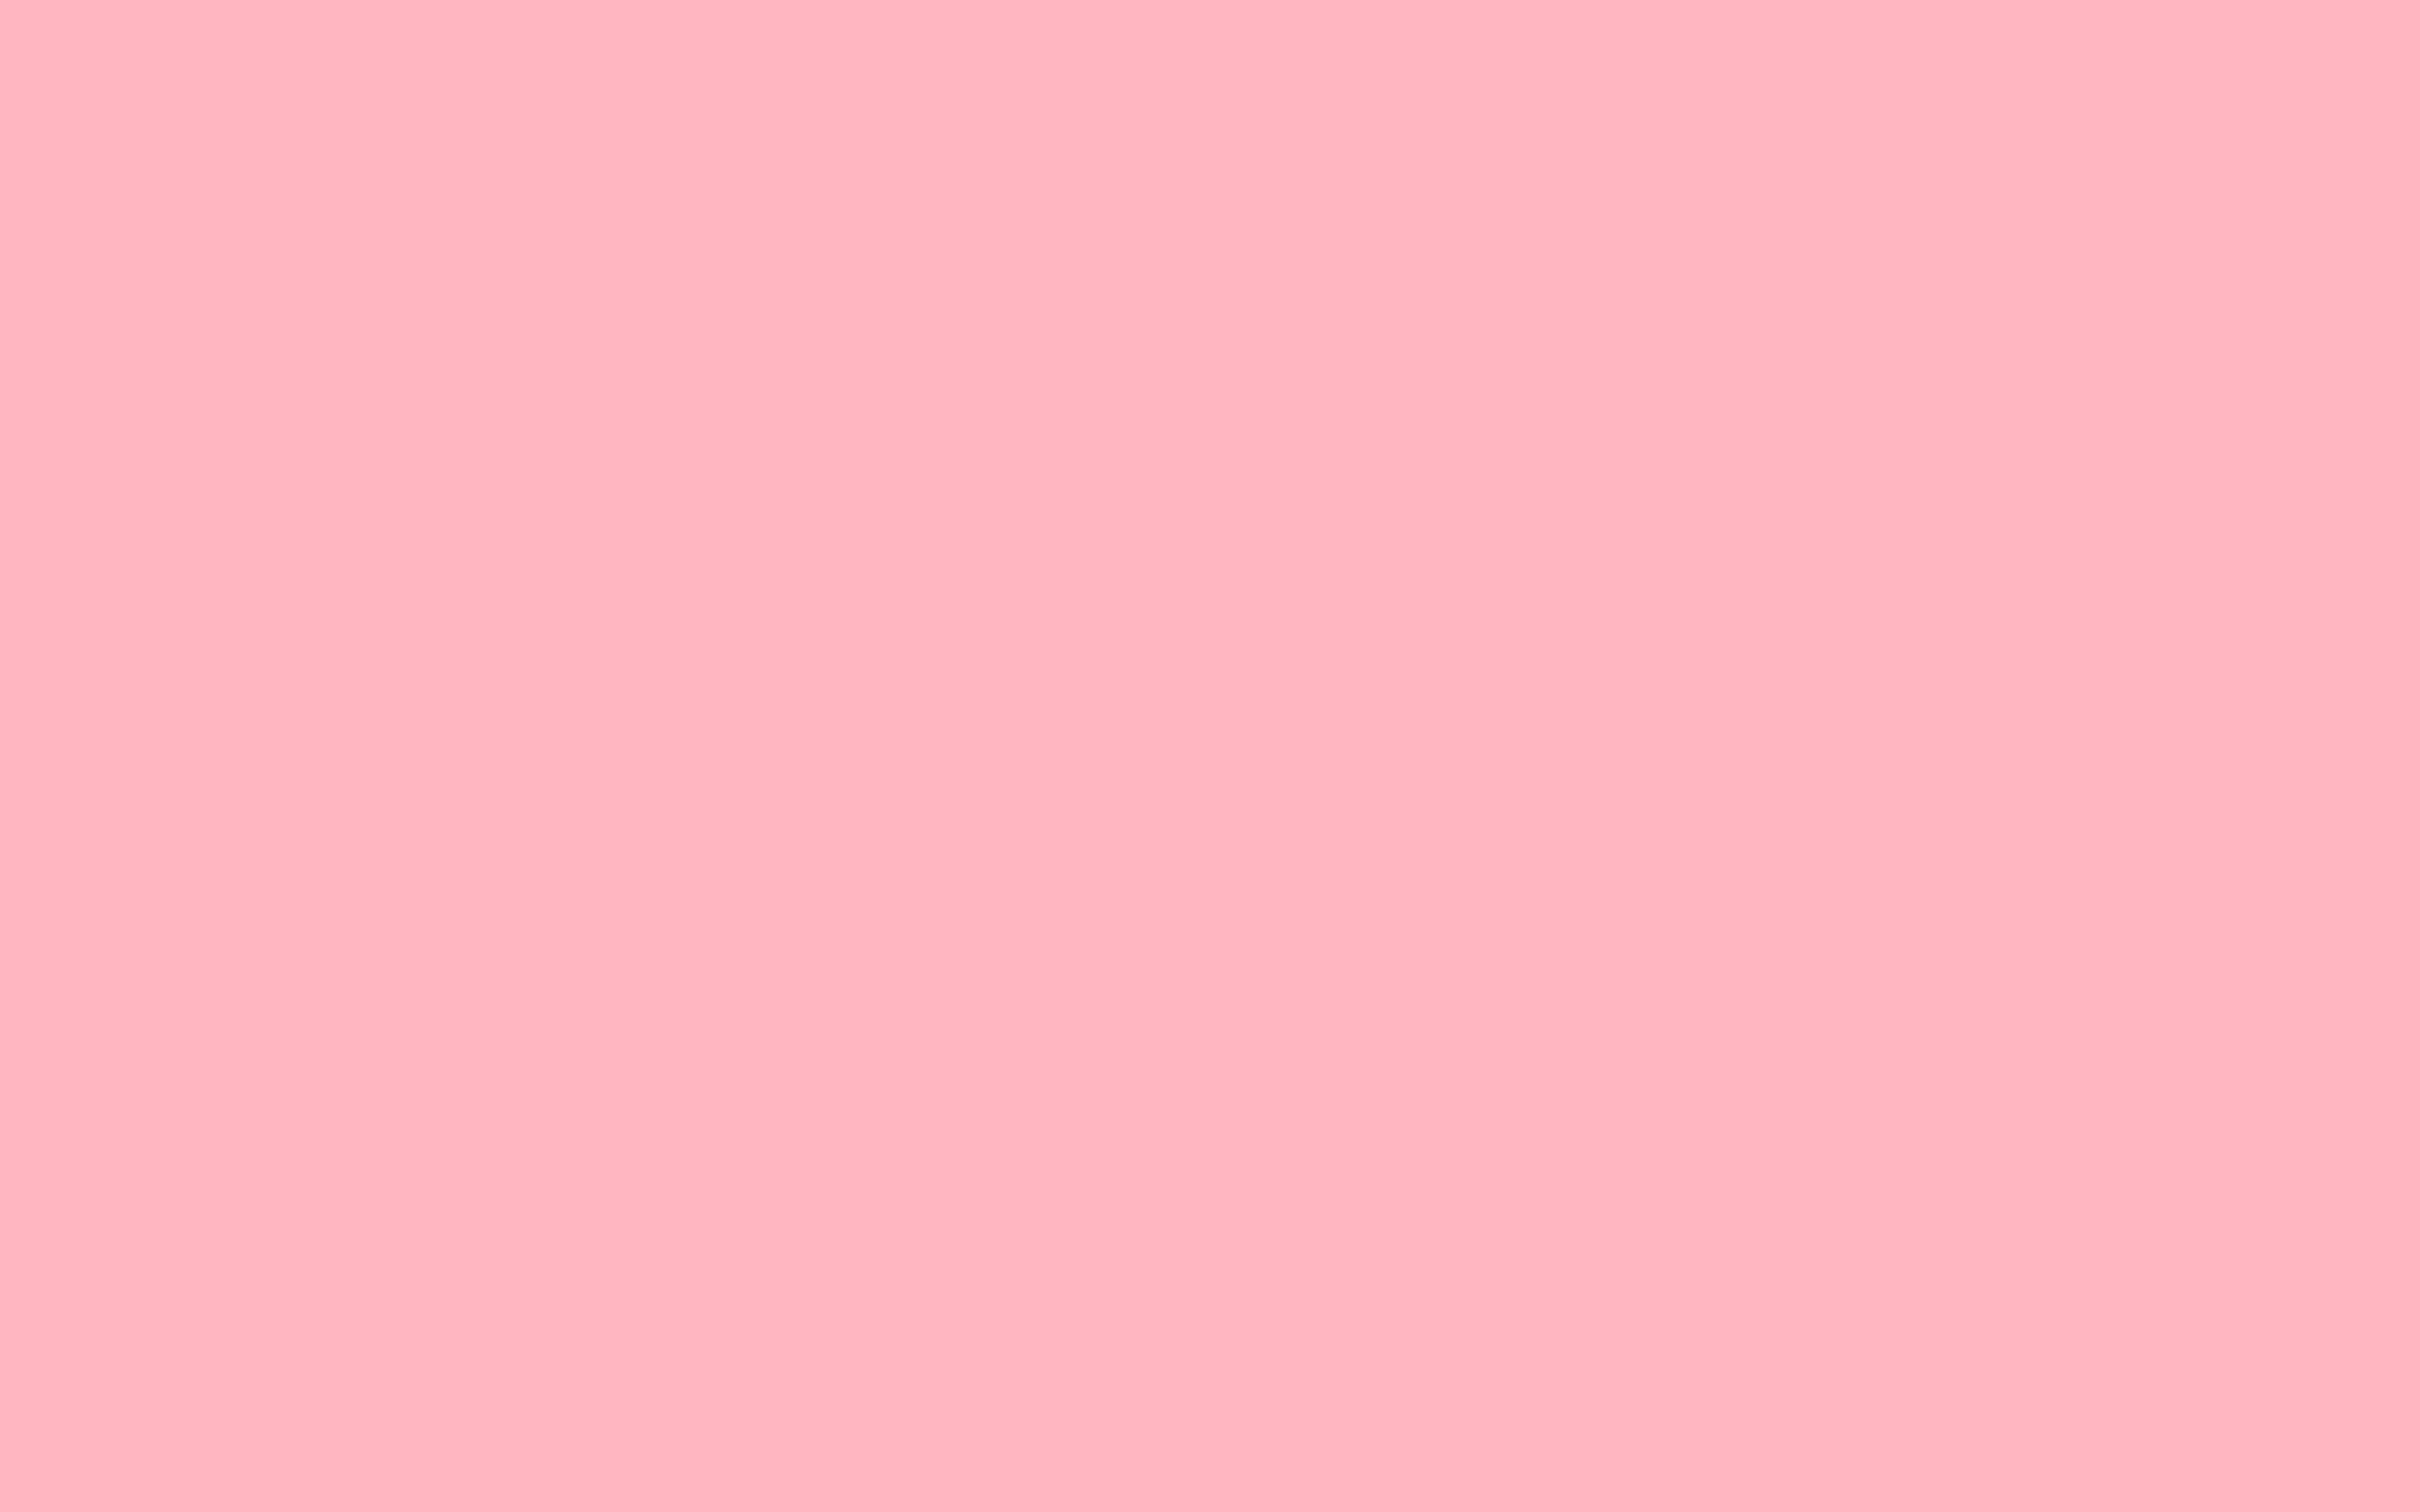 Light Pink Backgrounds 2880x1800